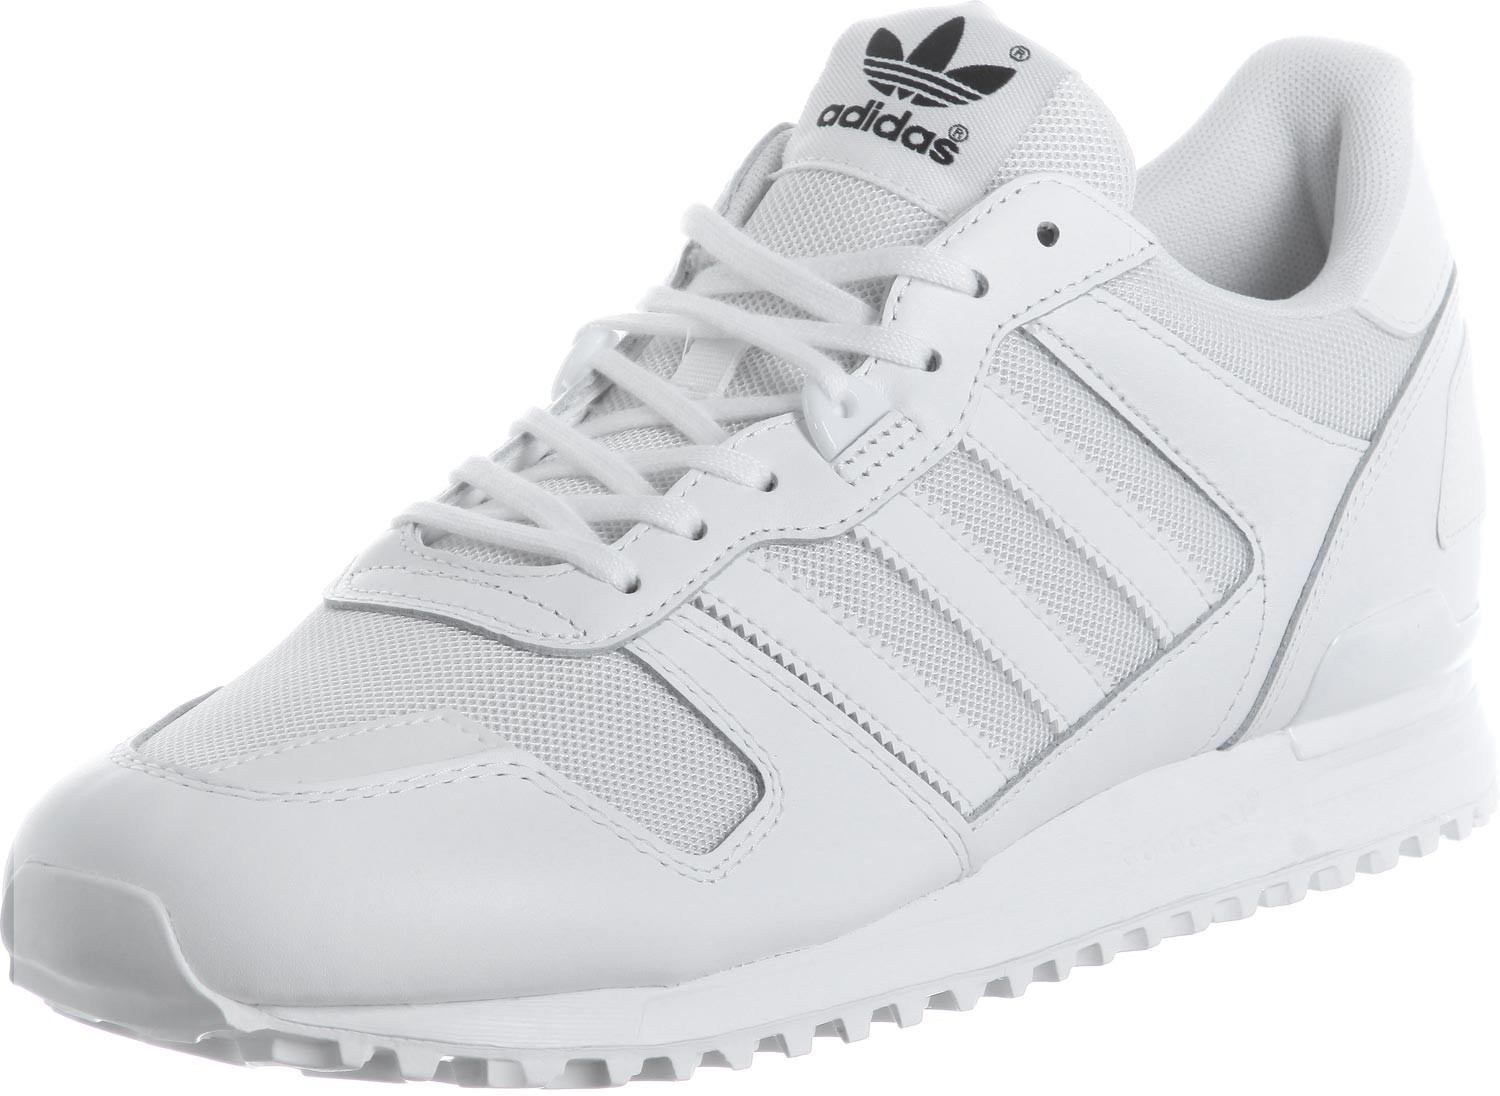 Adidas Zx 700 boutique blanche,